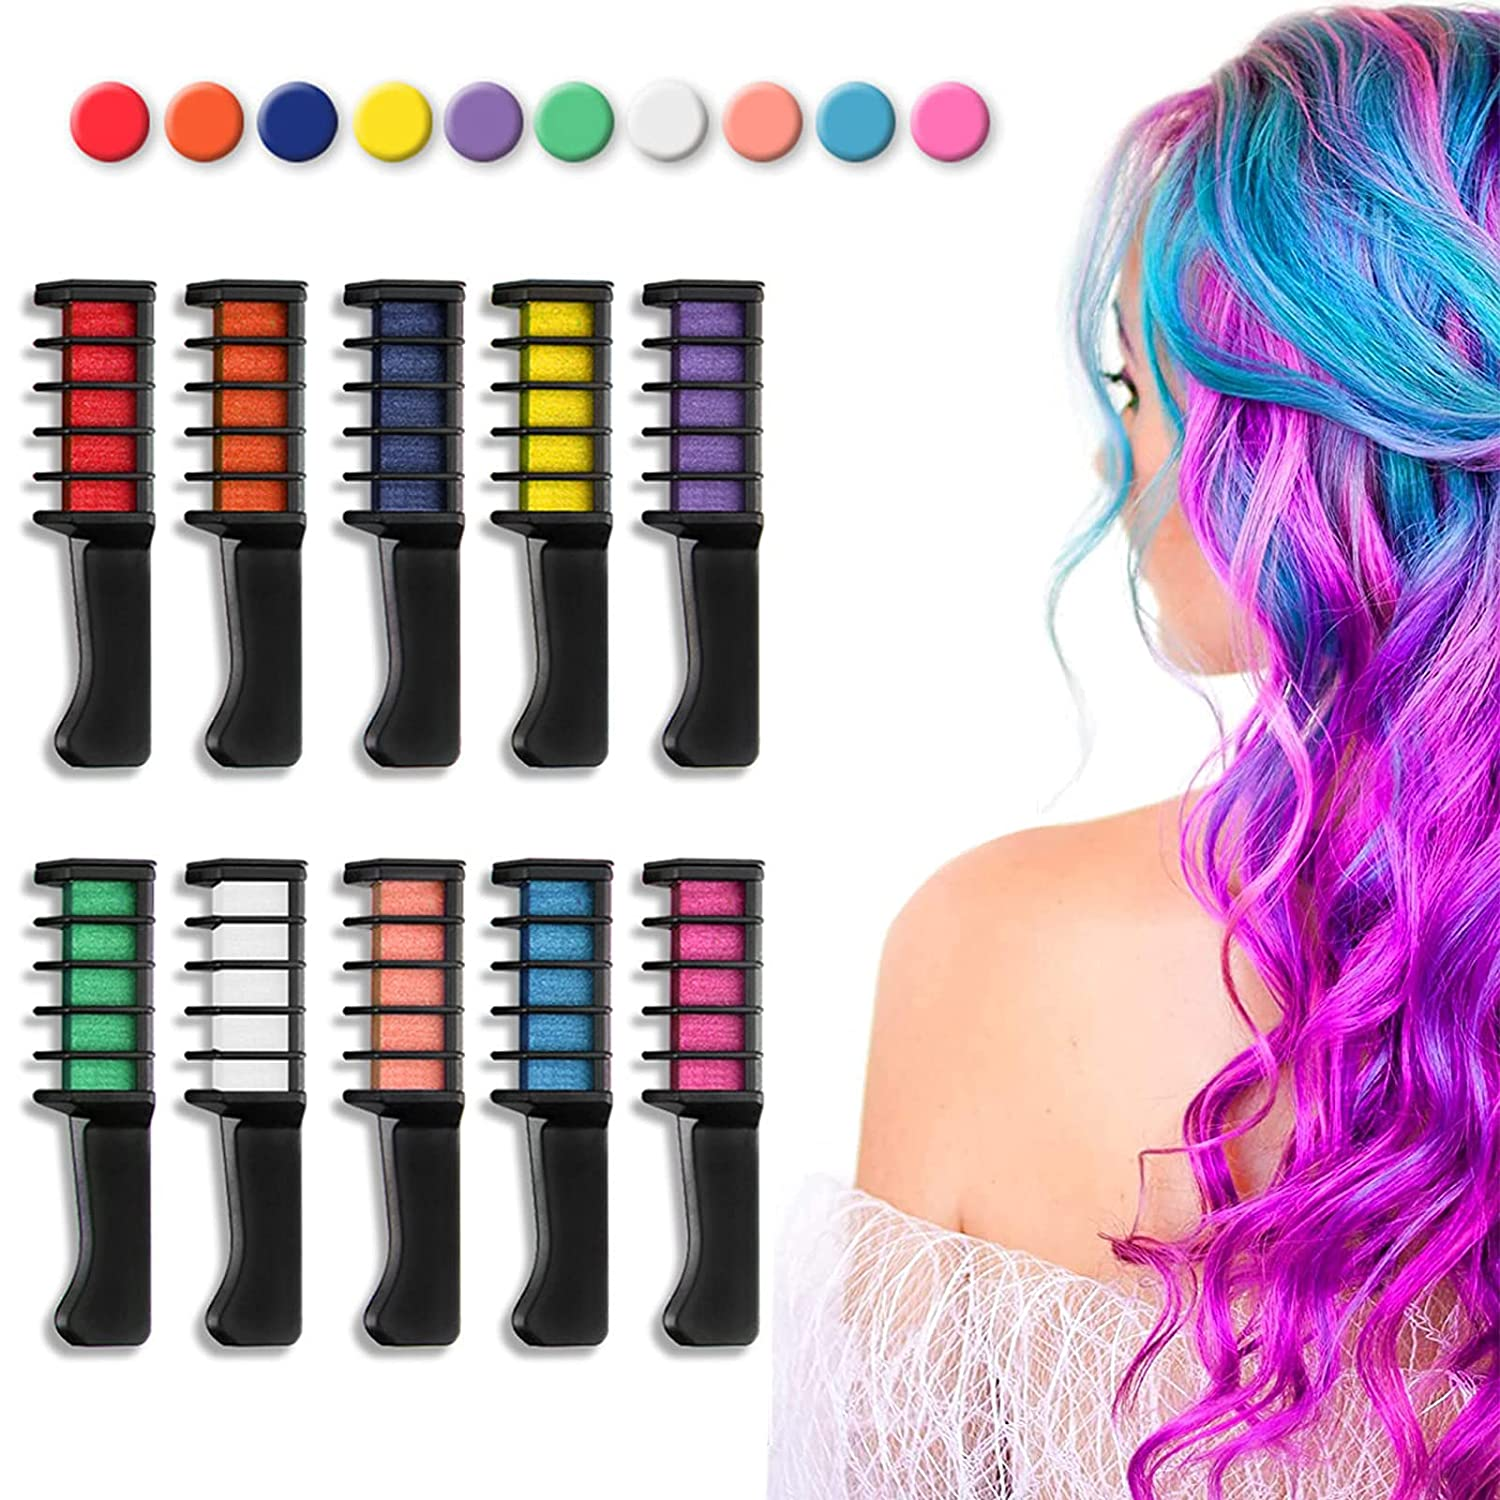 10 Colors Hair Chalk 5 popular for Soldering Kids Temporary Bright Comb H